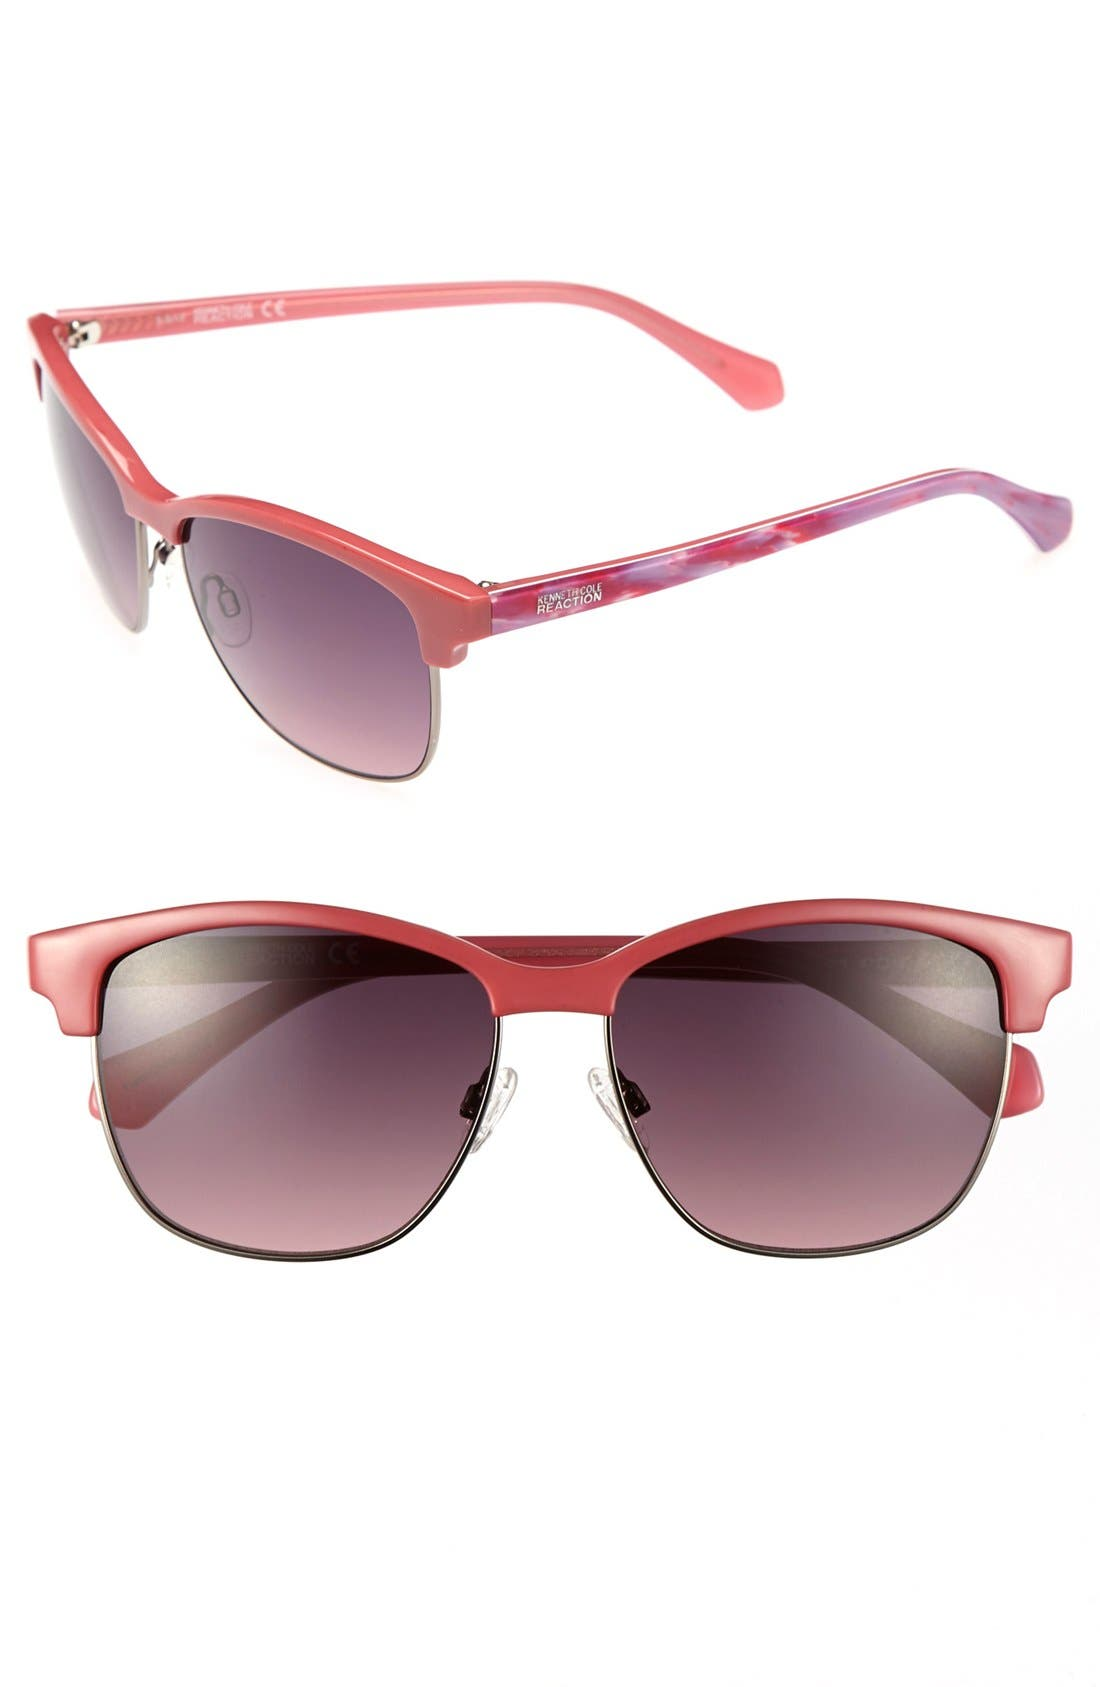 Alternate Image 1 Selected - Kenneth Cole Reaction 'Clubmaster' 57mm Sunglasses